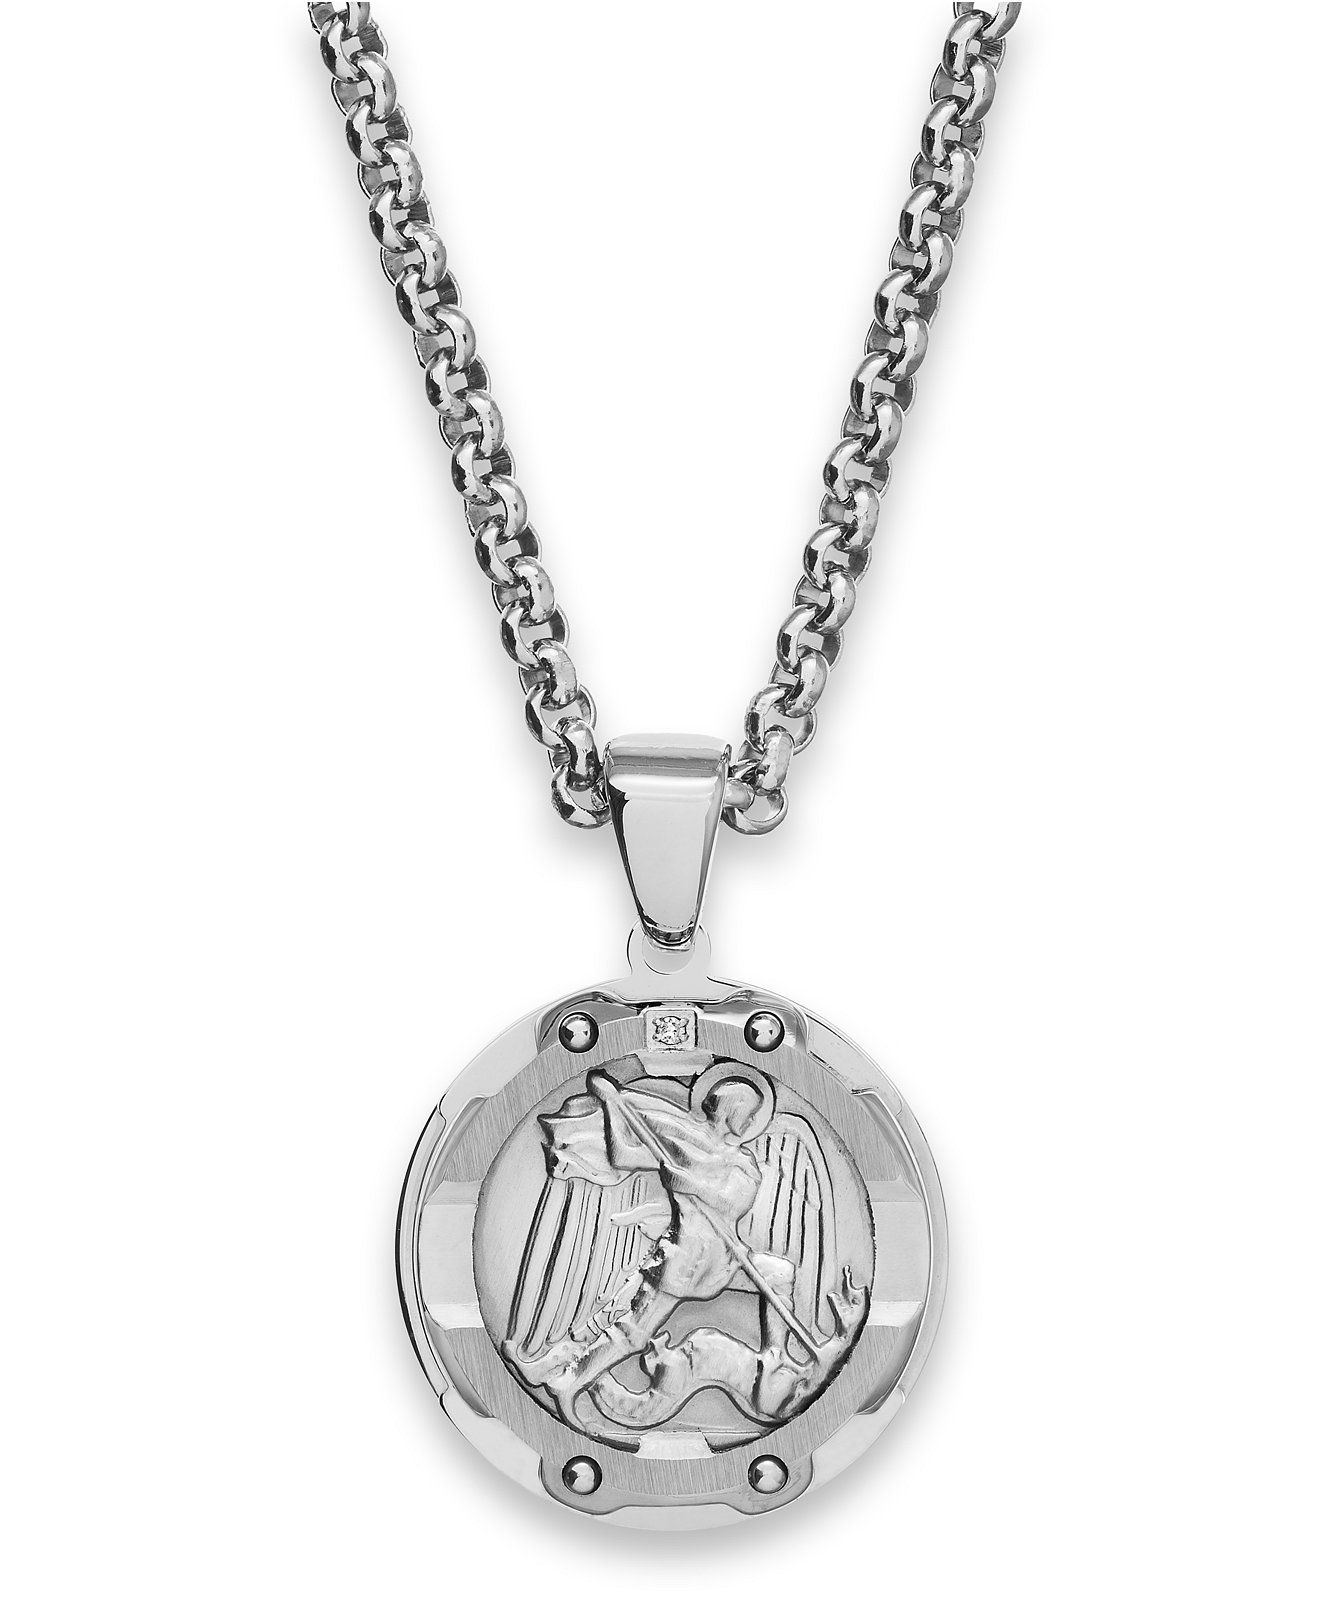 sterling medal michael pendant s jewelry silver st michaels com men collection mm store necklace dp private amazon the